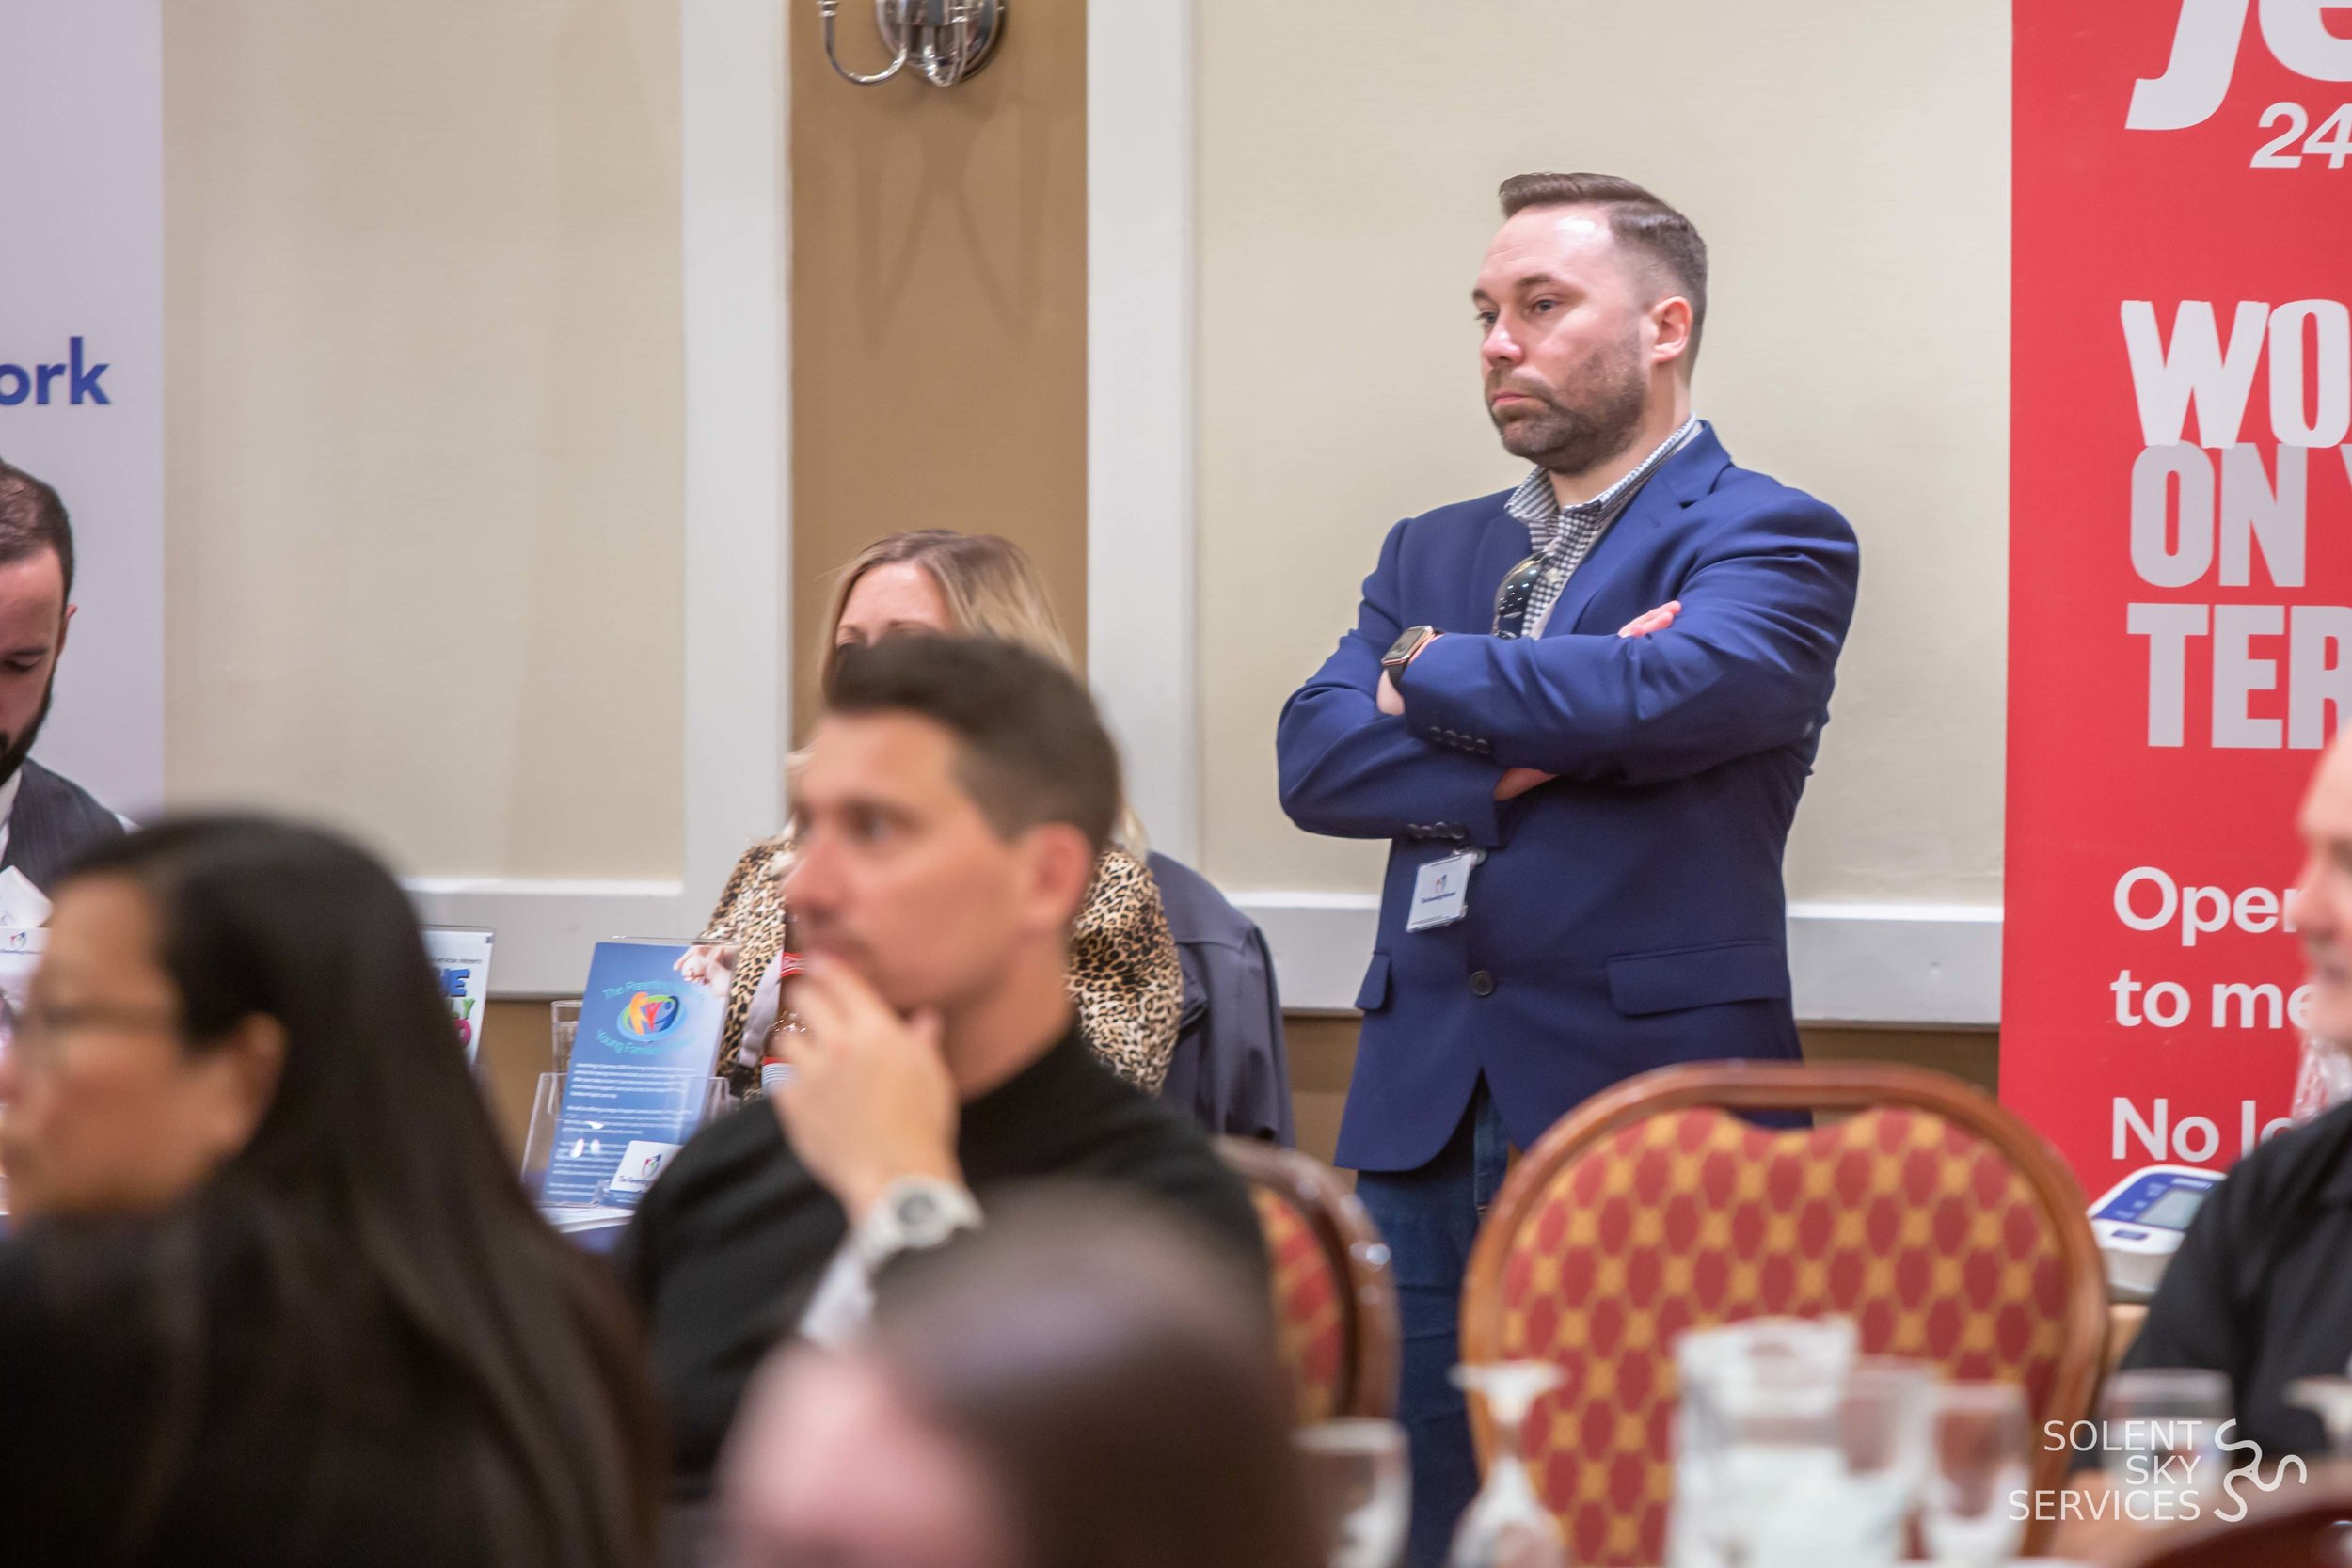 Synergy Success Networking Event #2 - Solent Sky Services-41.JPG